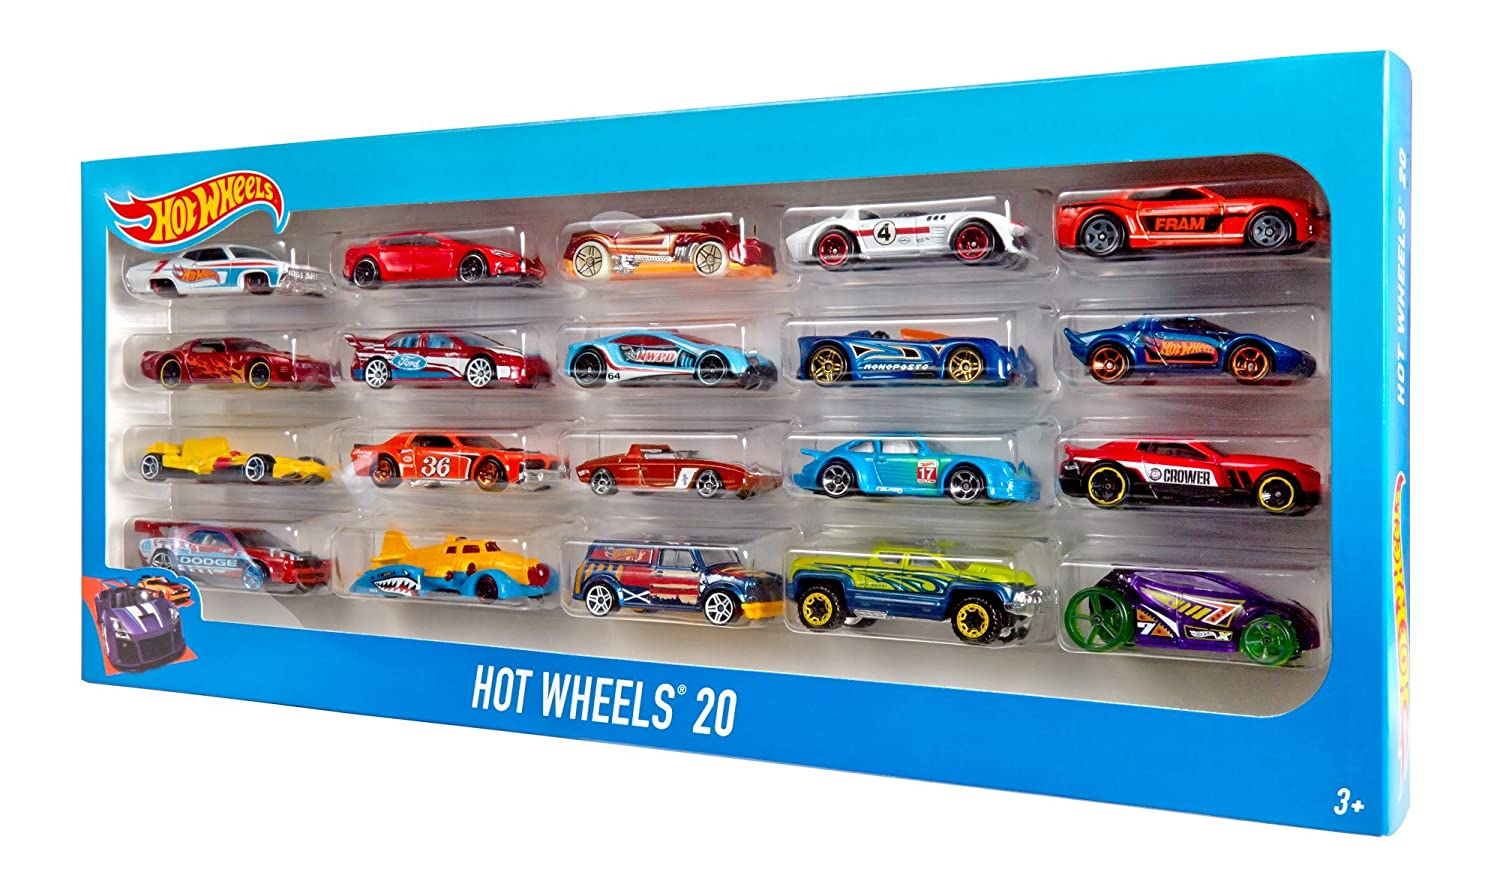 Buy Toy Cars Online Uk